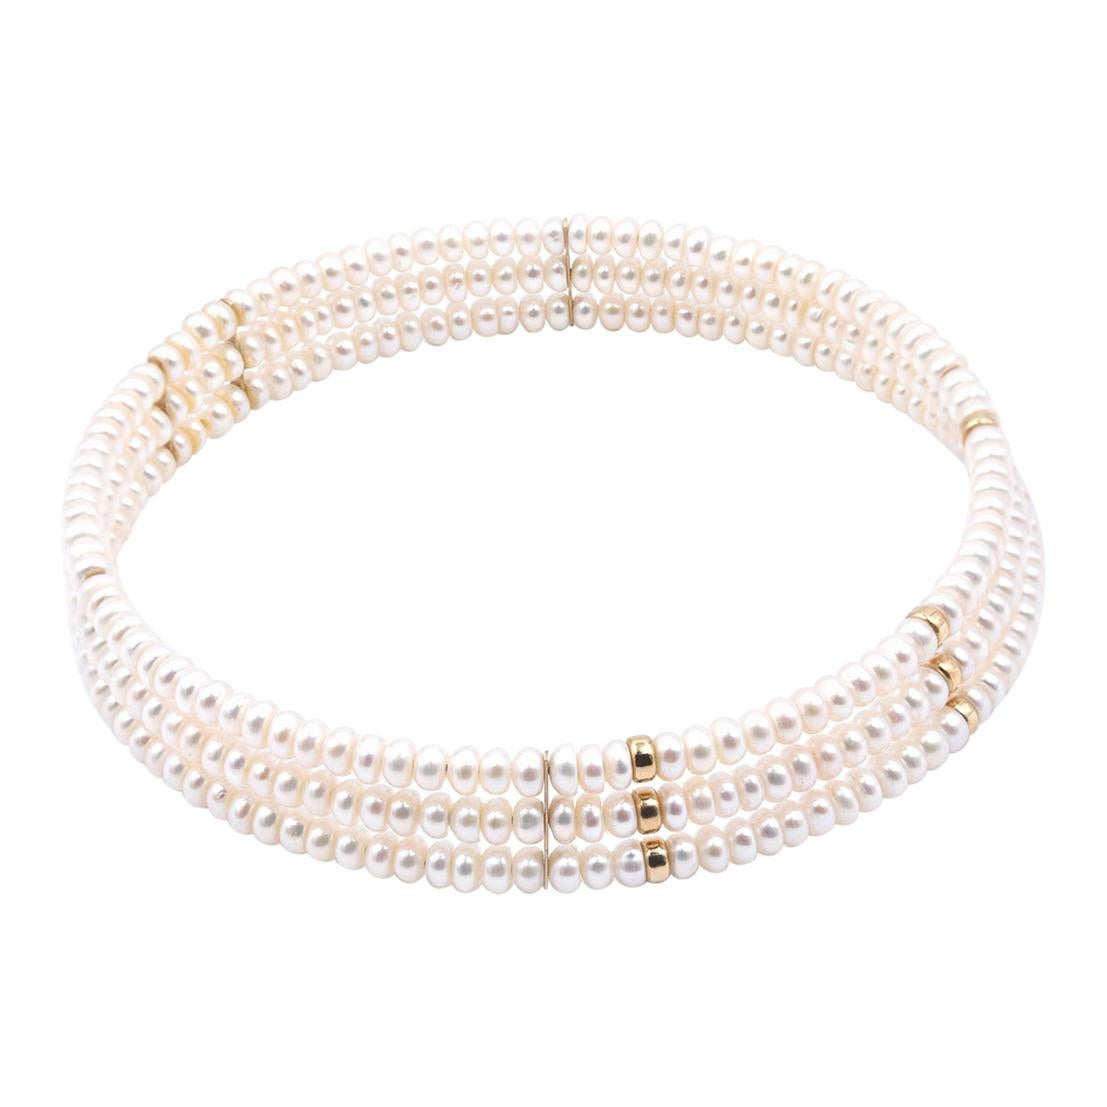 14 Karat Yellow Gold Station Pearl Necklace